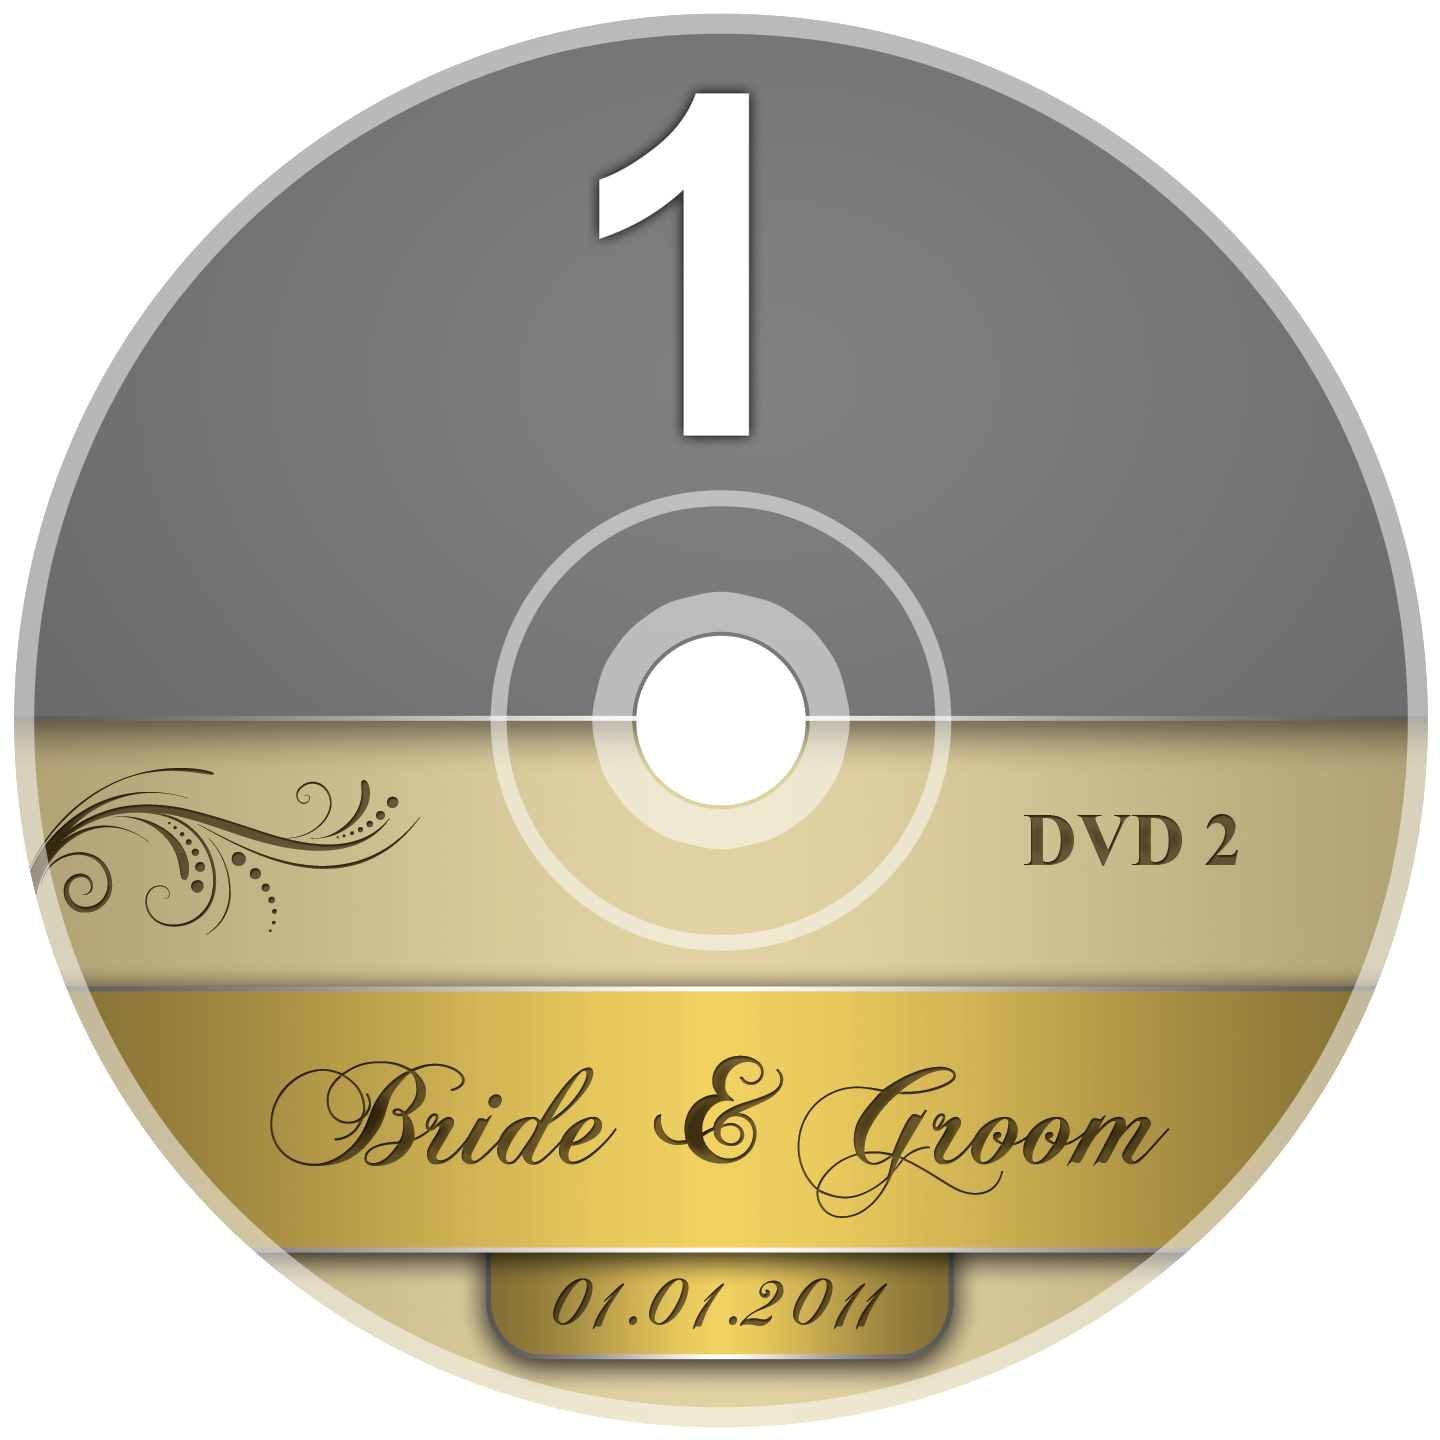 32 Dvd Label Templates, Birthday Party DVD Cover And DVD Label